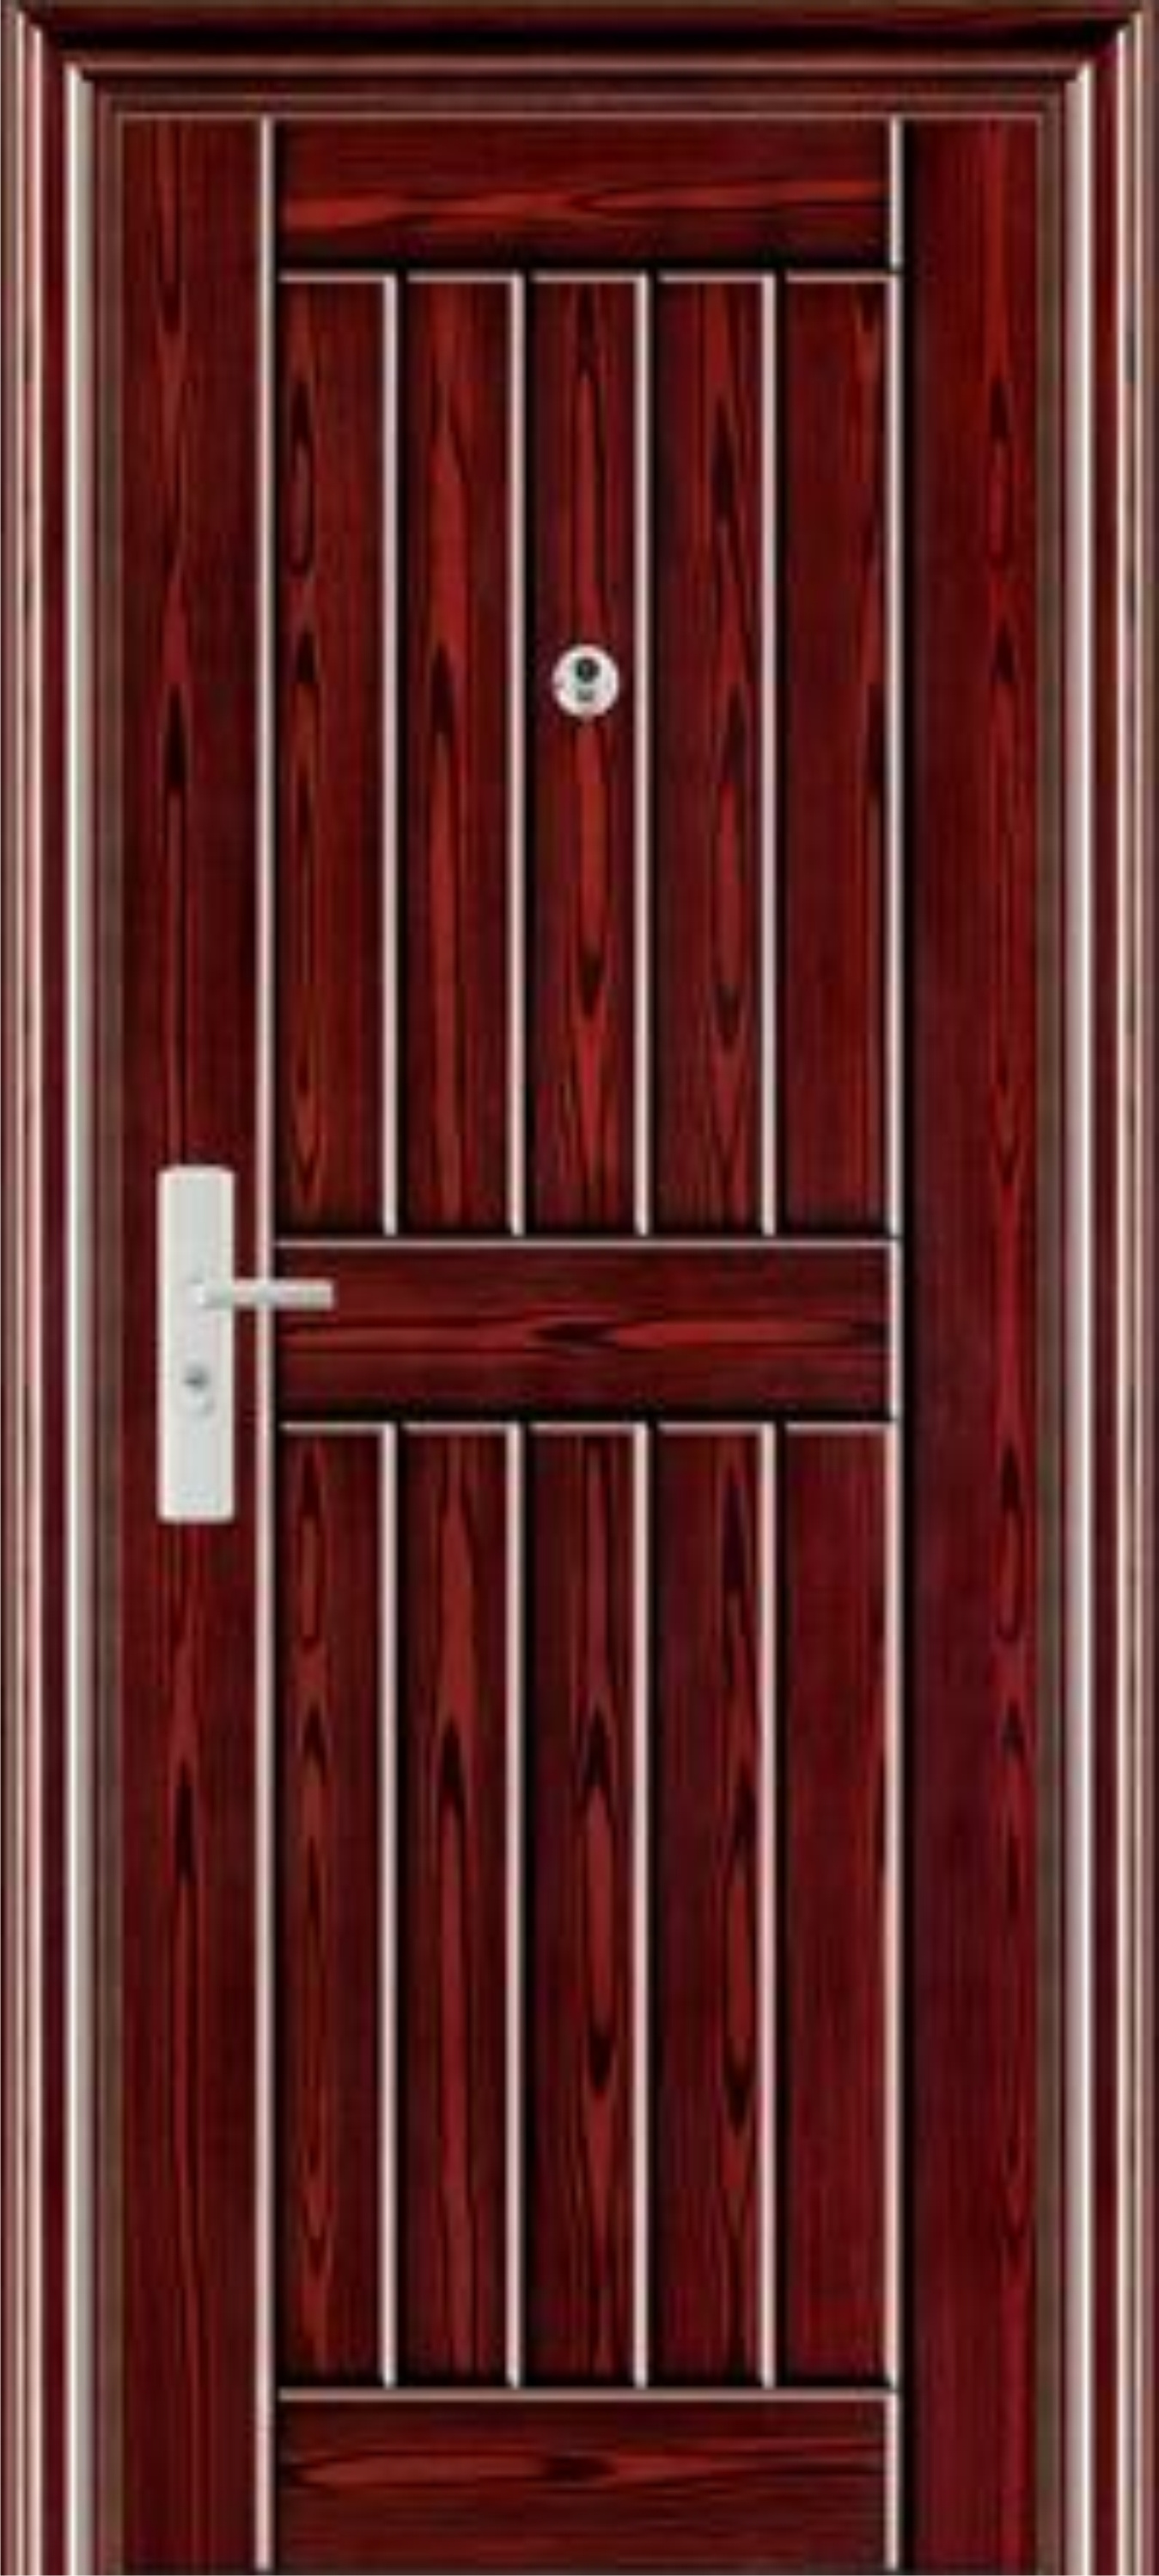 Single steel doors pionare enterprises ltd for Steel entry doors